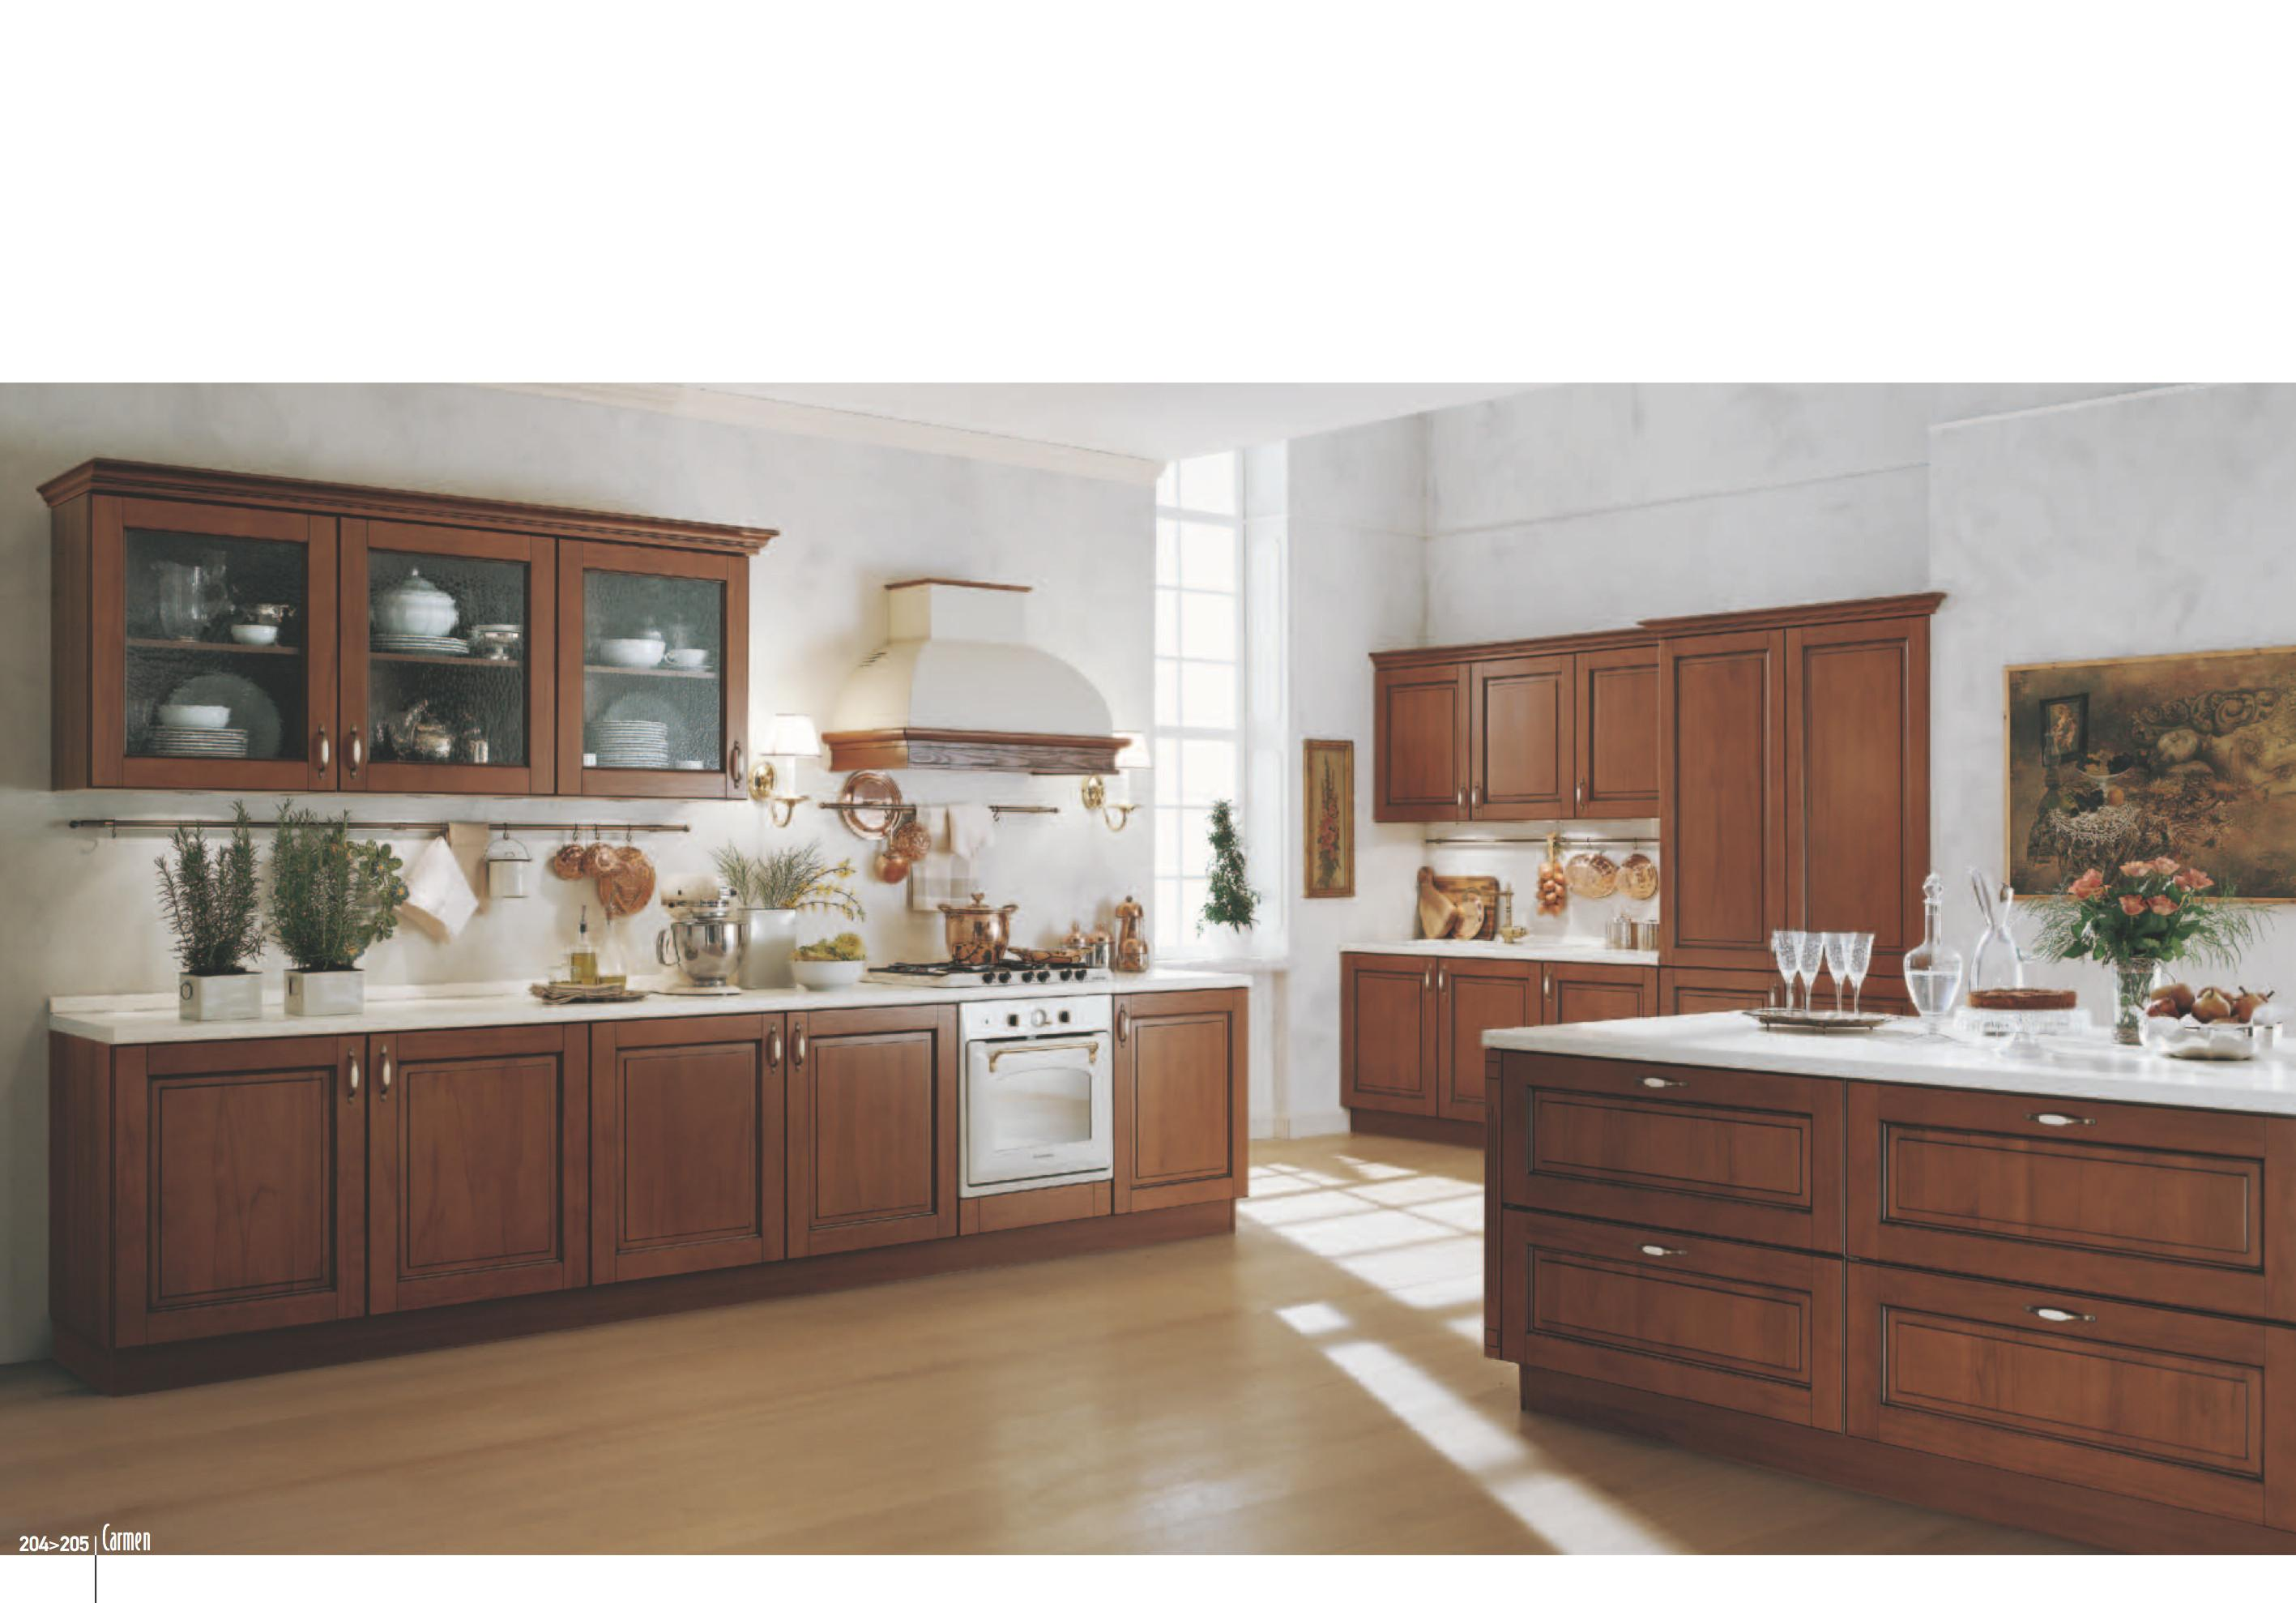 Classic Kitchens Visionary Custom Cabinetry